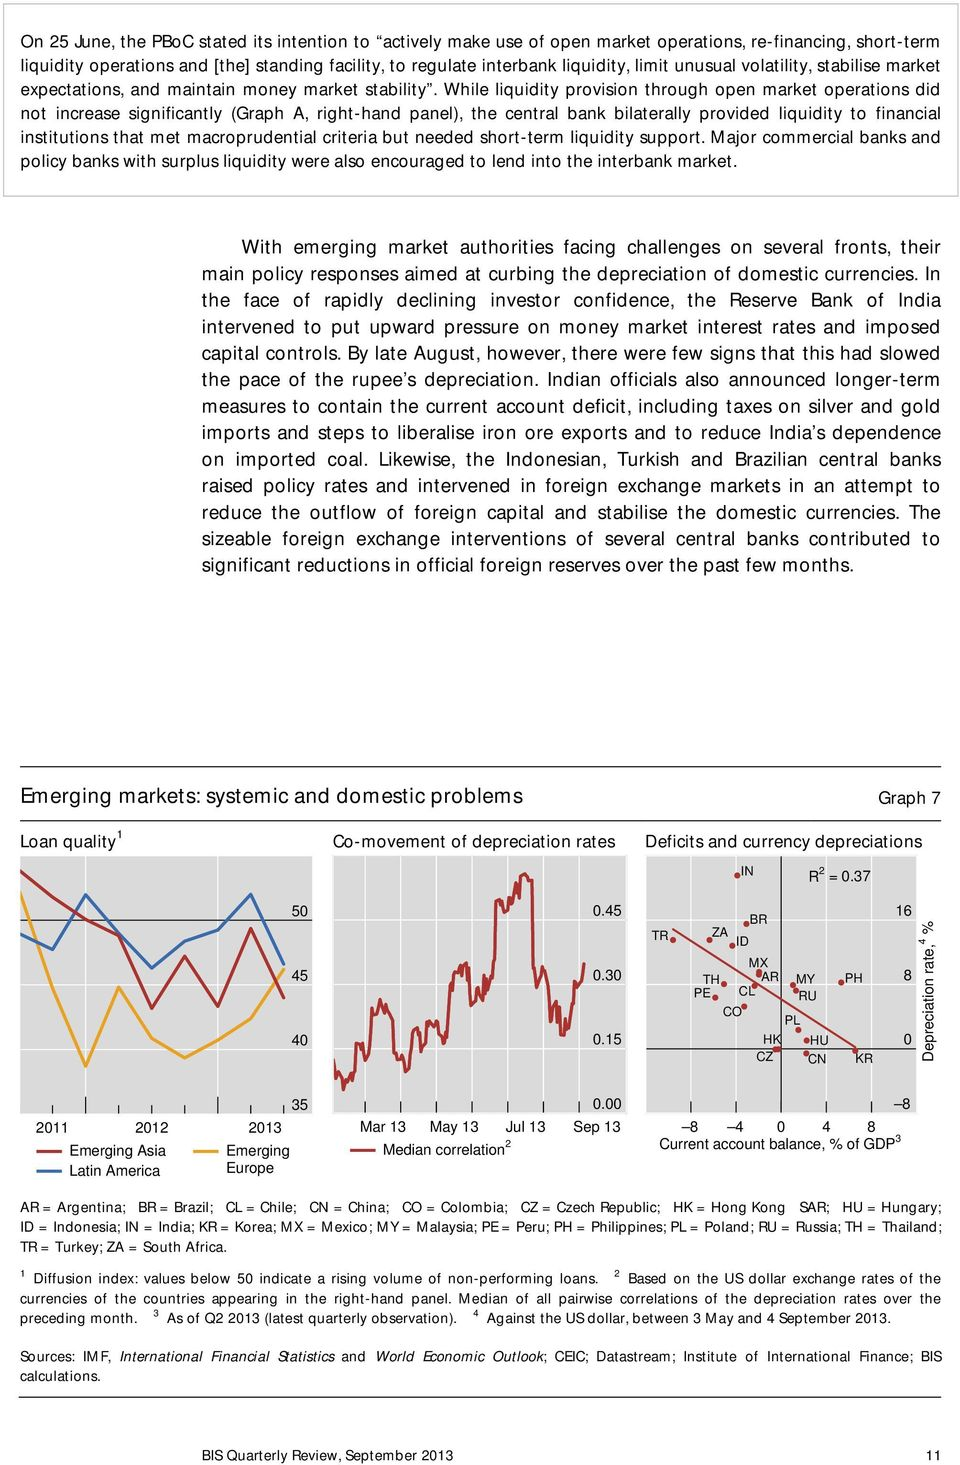 While liquidity provision through open market operations did not increase significantly (Graph A, right-hand panel), the central bank bilaterally provided liquidity to financial institutions that met